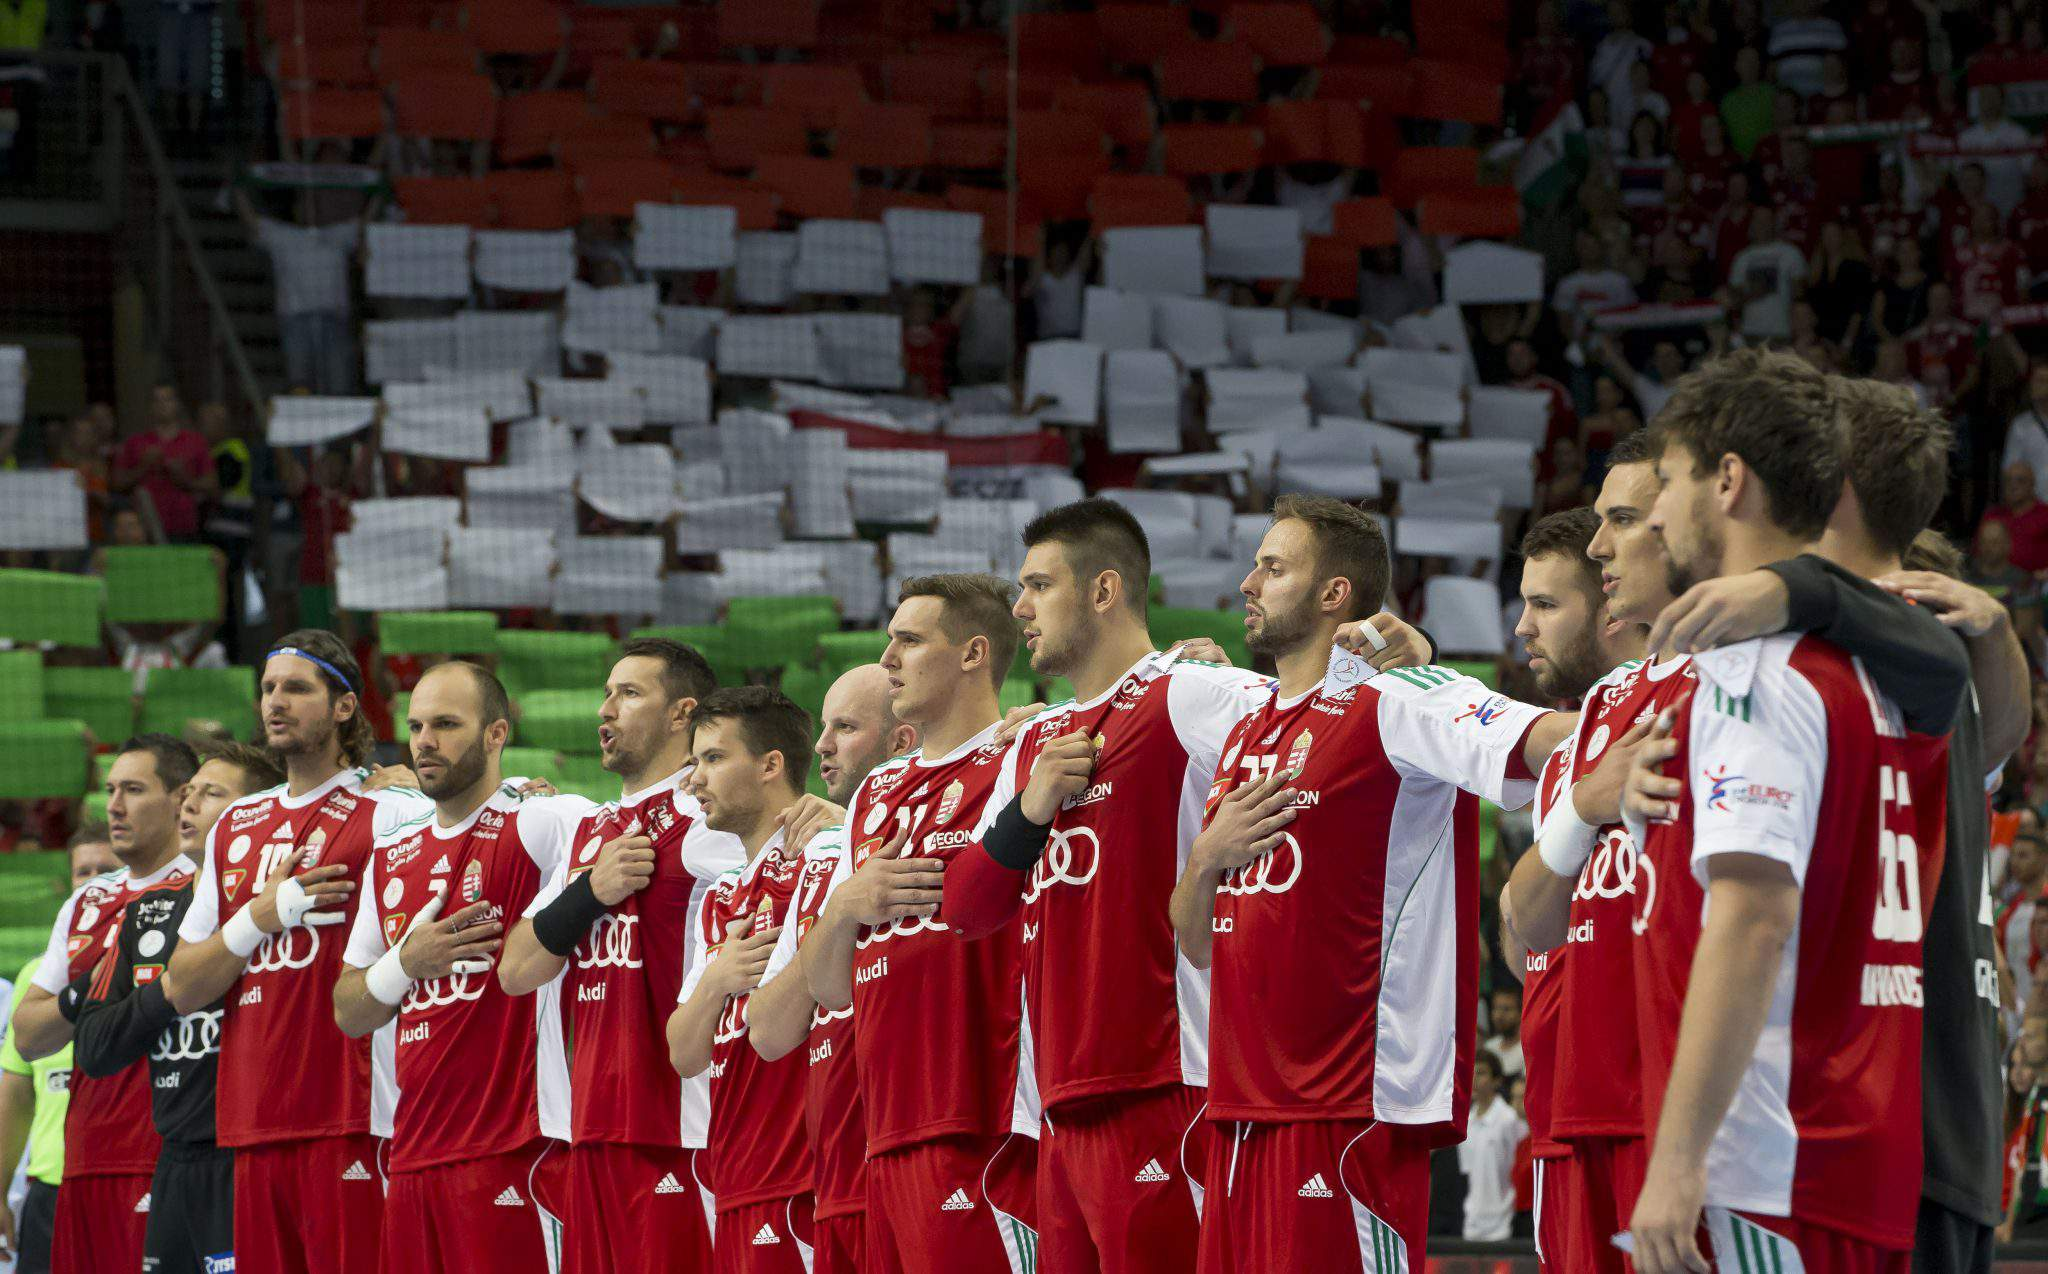 handball, hungarian, team, sports